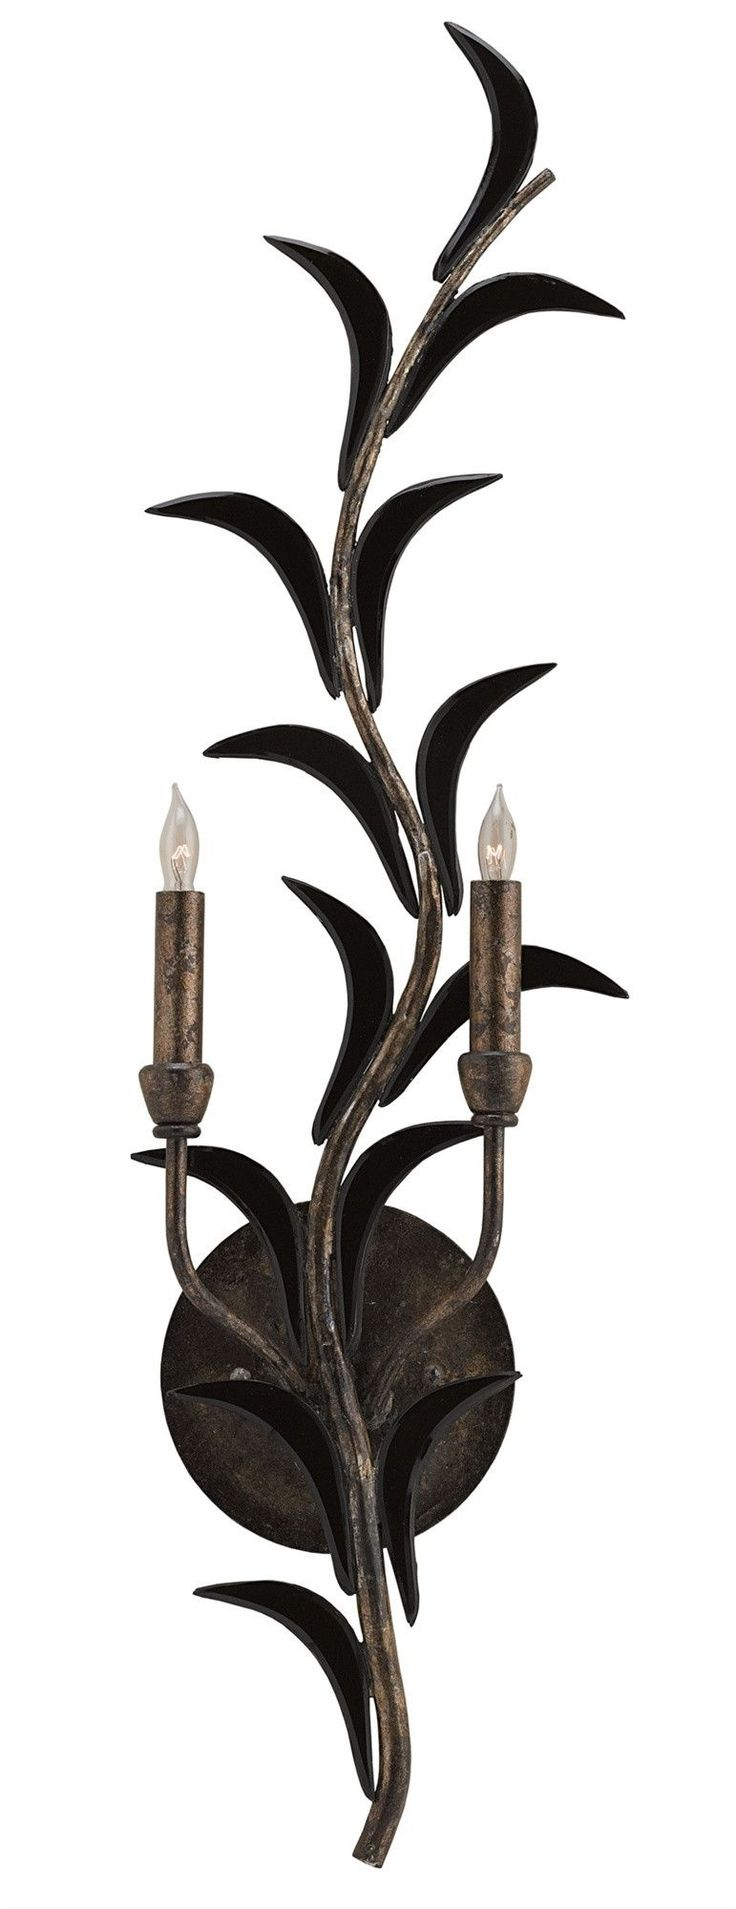 Malverne Left Wall Sconce design by Currey & Company